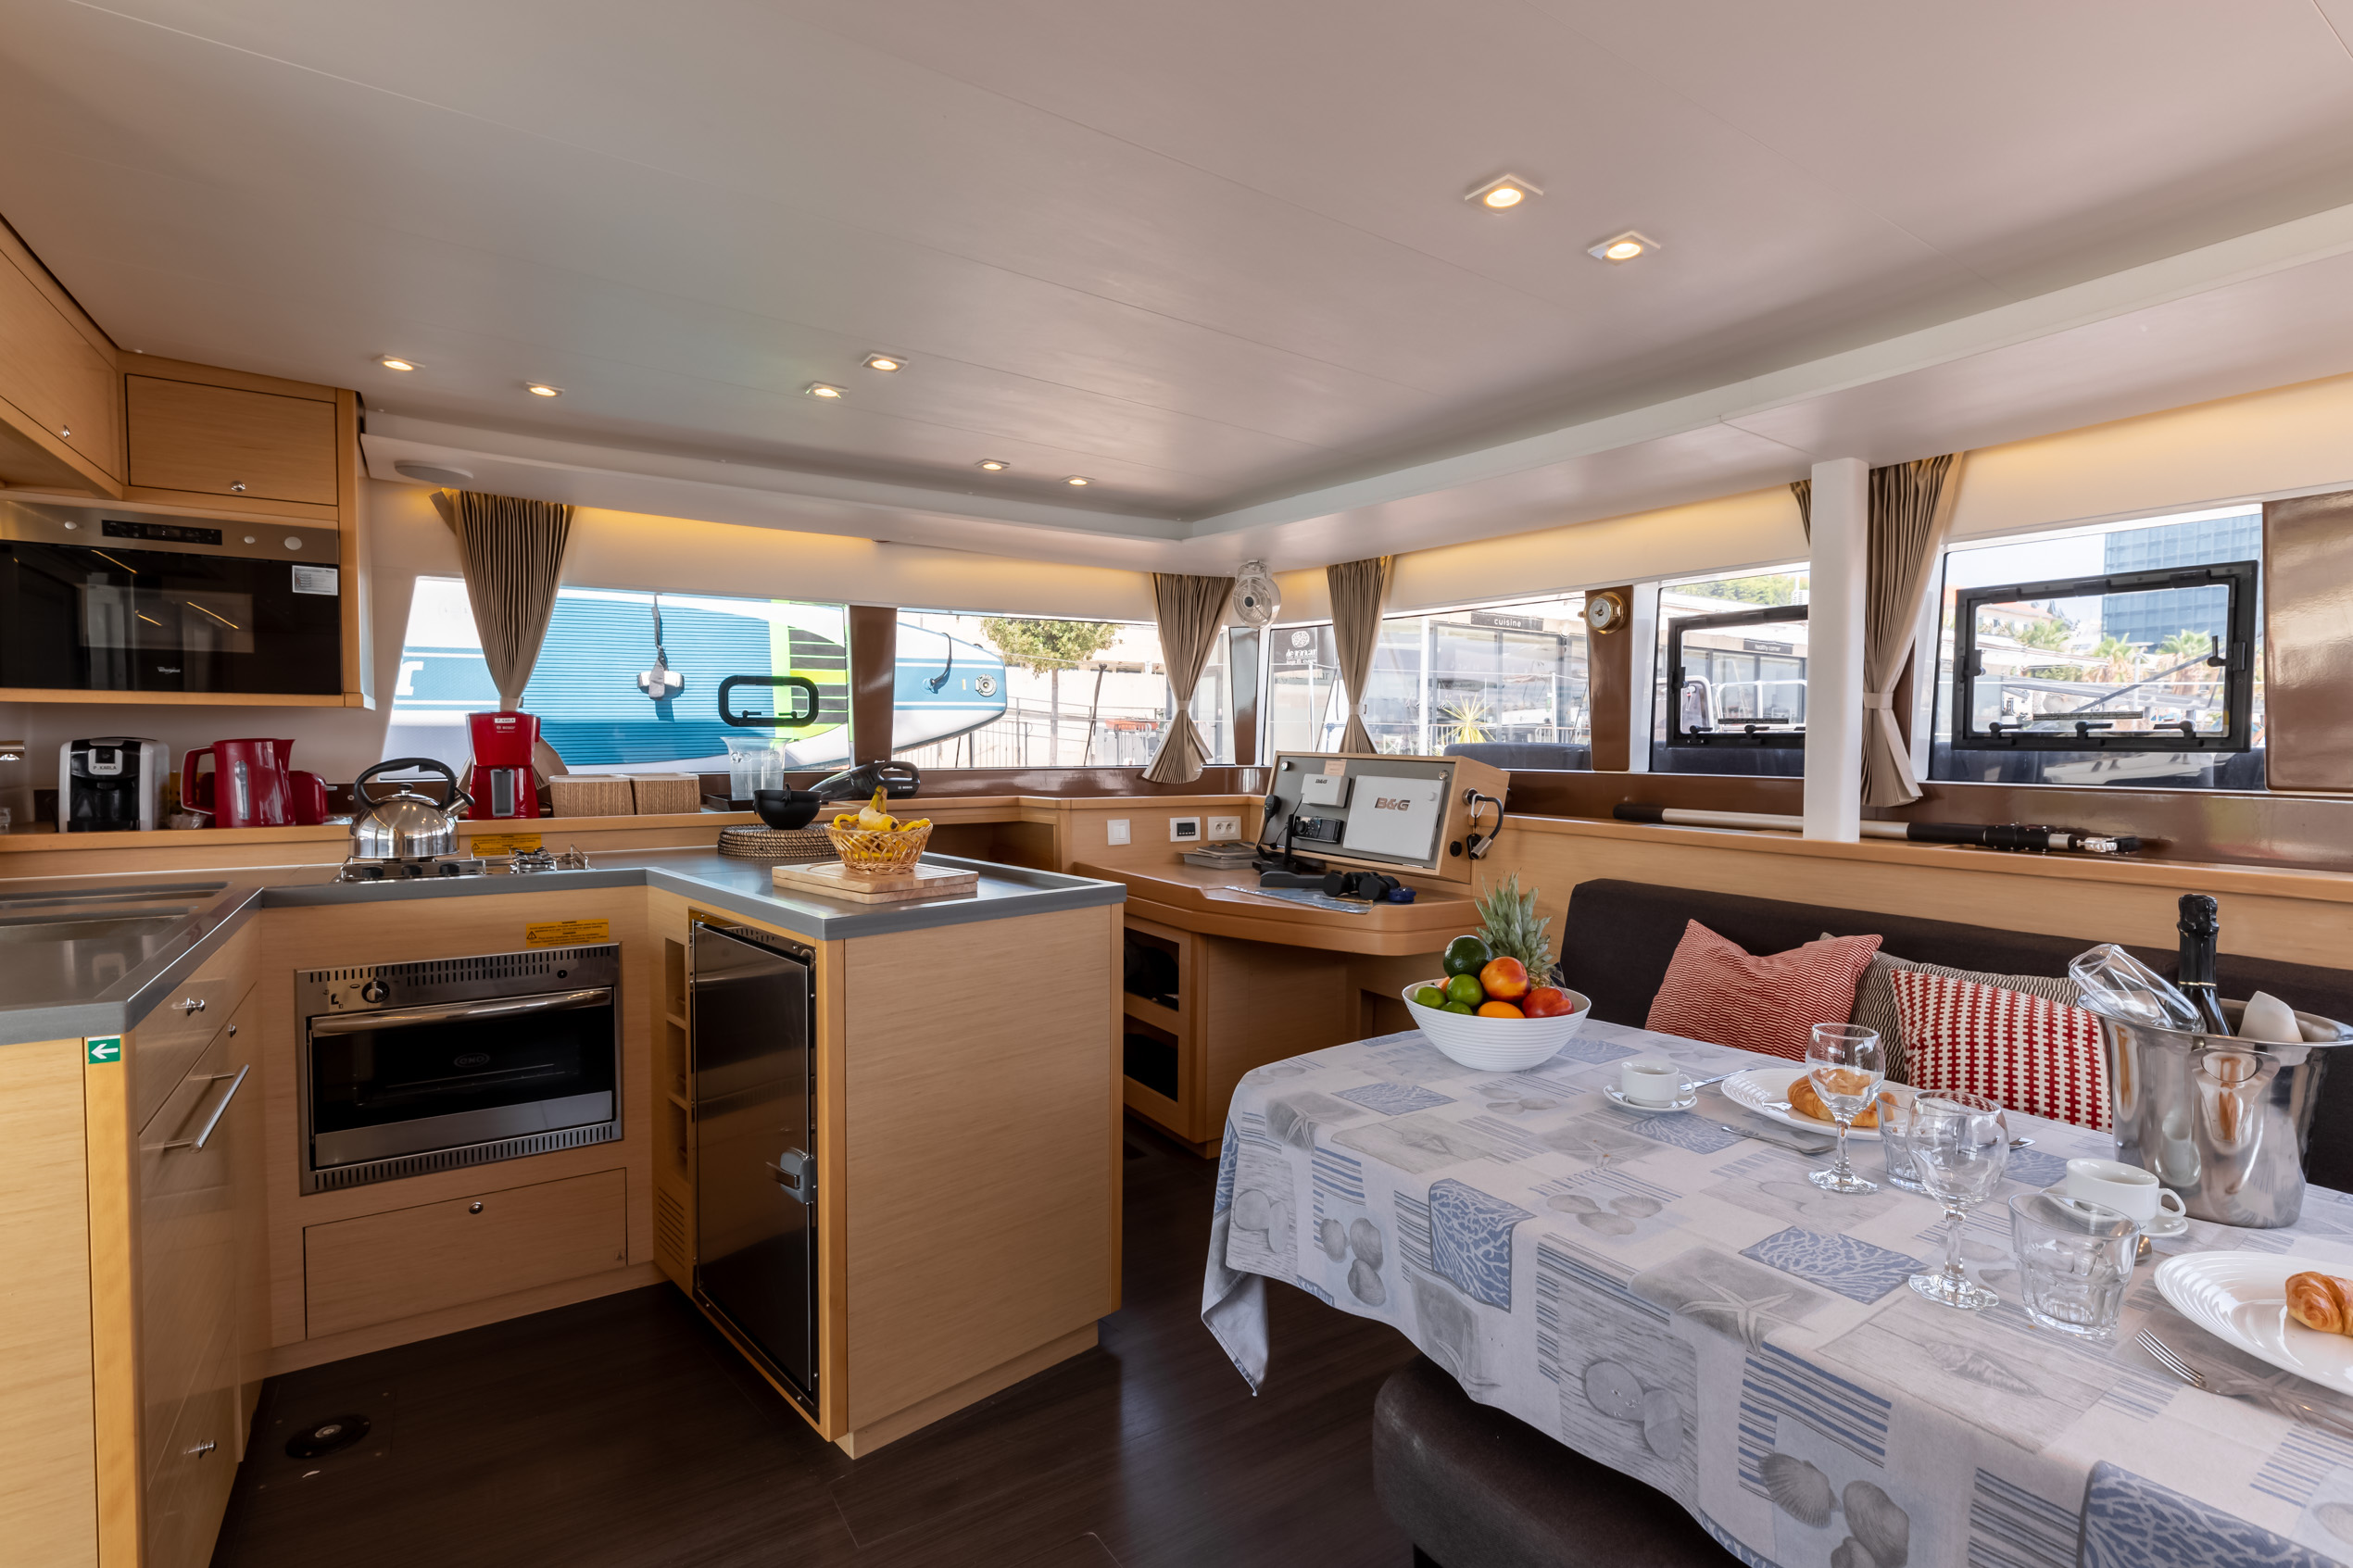 Lagoon 450 F (2017) equipped with generator, A/C ( (PRINCESS KARLA I)  - 7